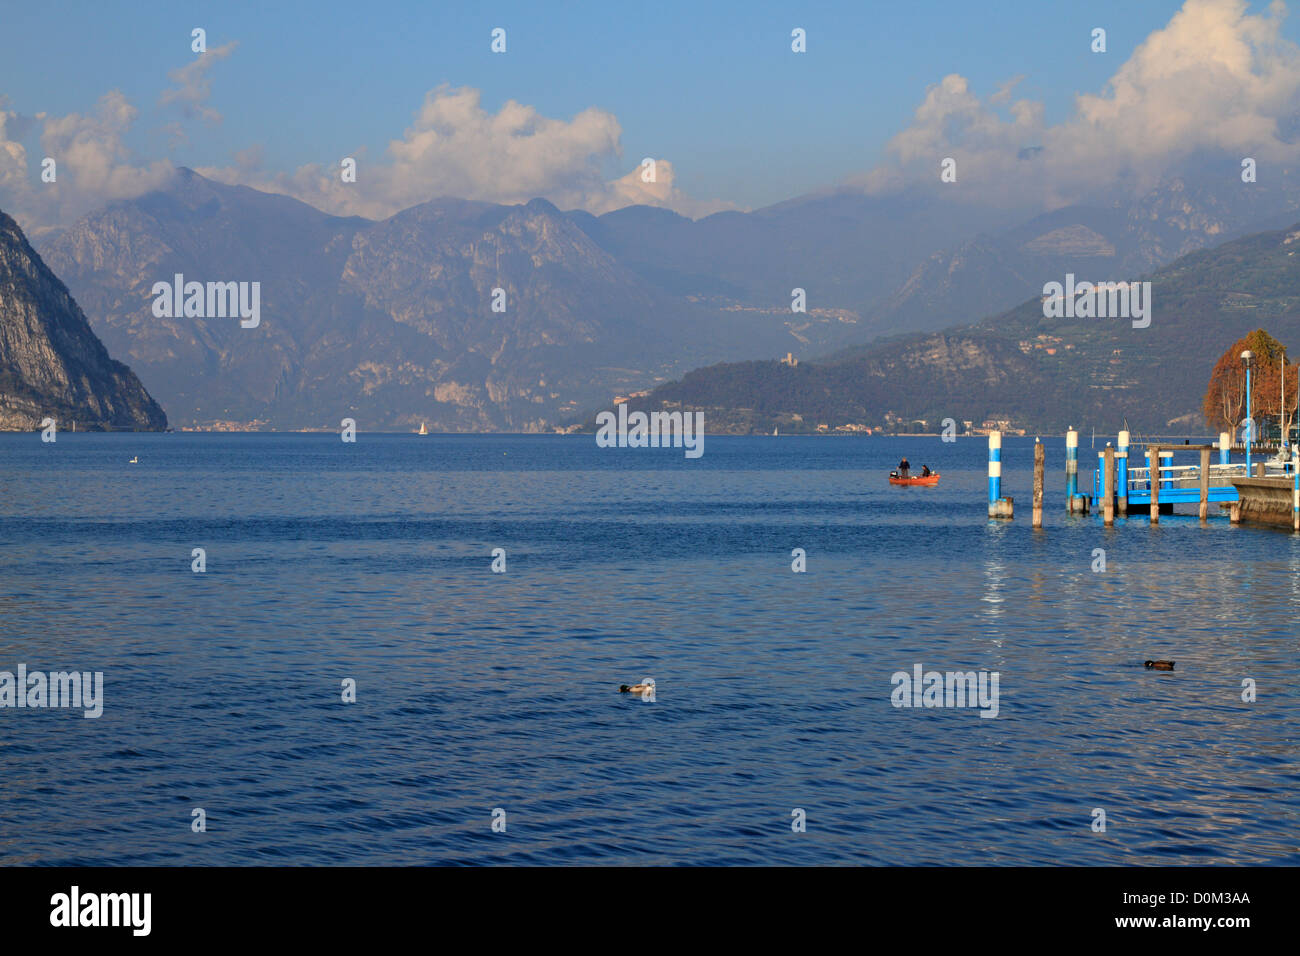 Lake Iseo near Bergamo, Lombardy, Italy, Europe. Stock Photo